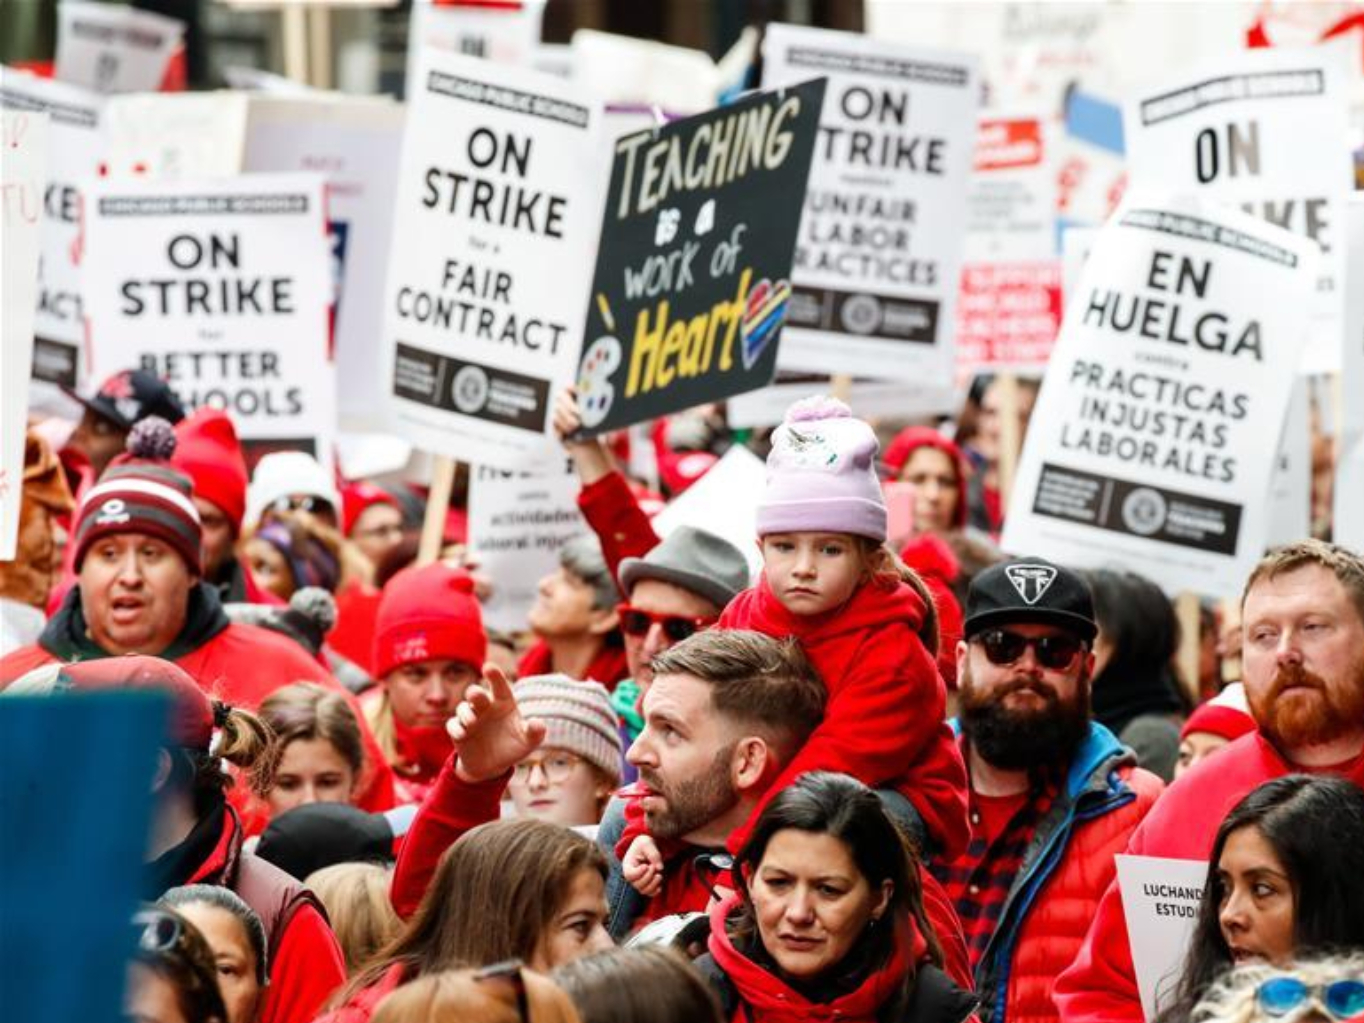 People take part in Chicago Teachers' Union strike rally